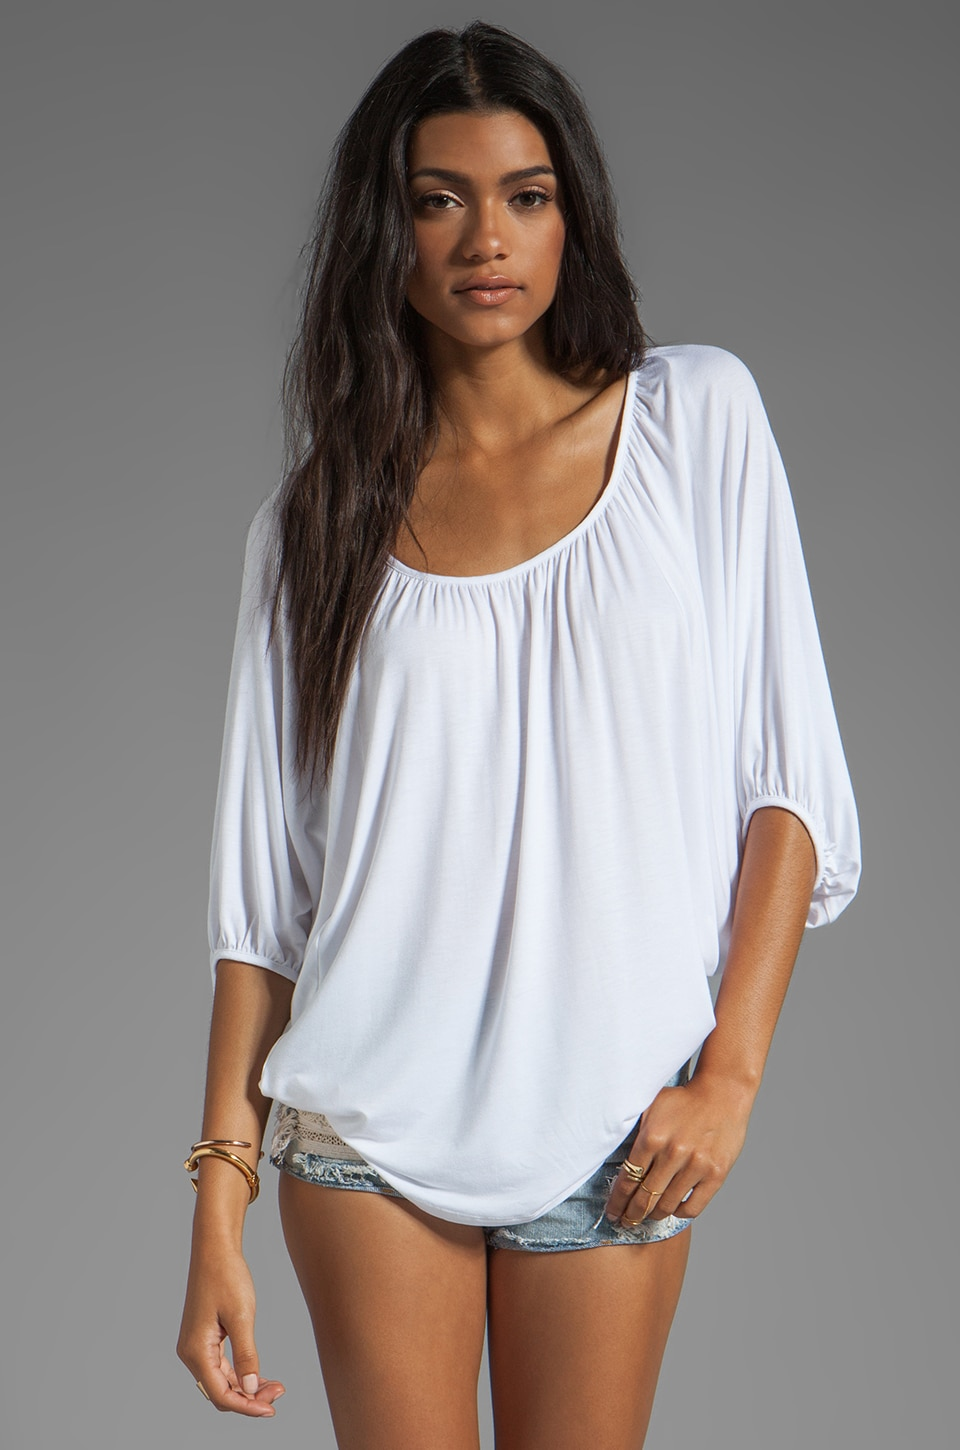 James & Joy James Top in White